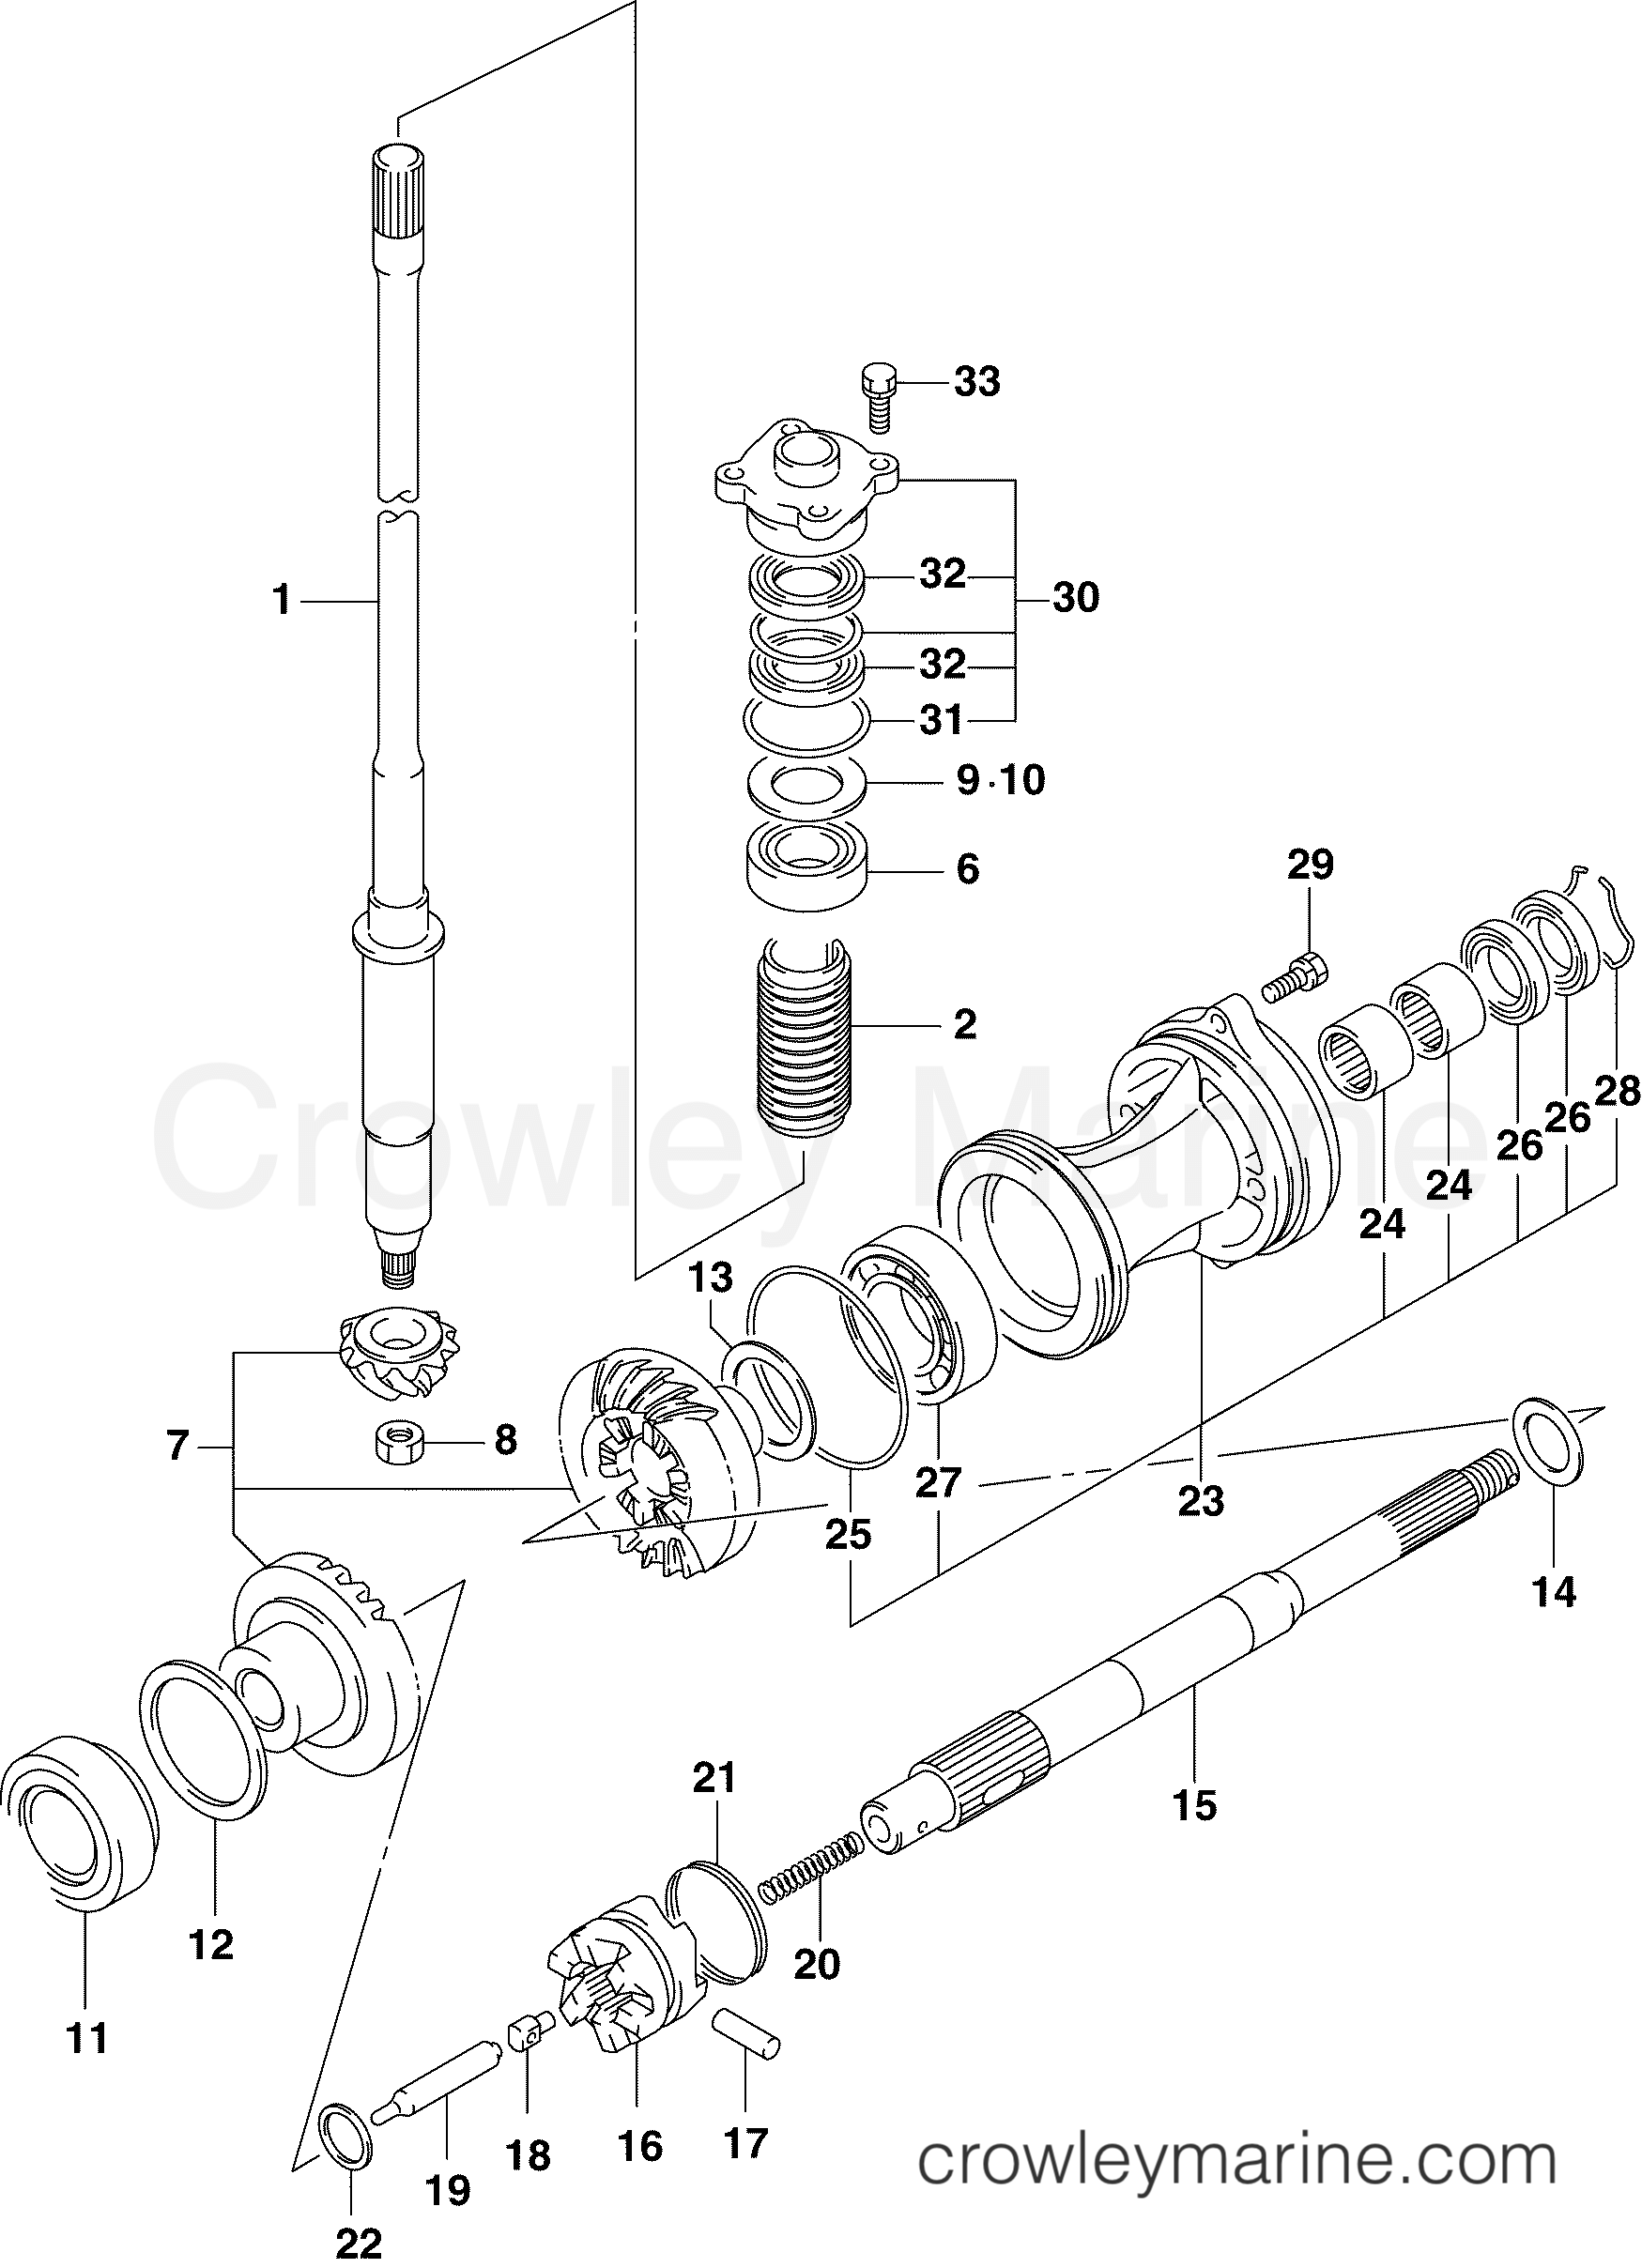 hight resolution of johnson outboard driveshaft propeller shaft diagram and parts driveshaft propeller shaft 2006 johnson outboards 60